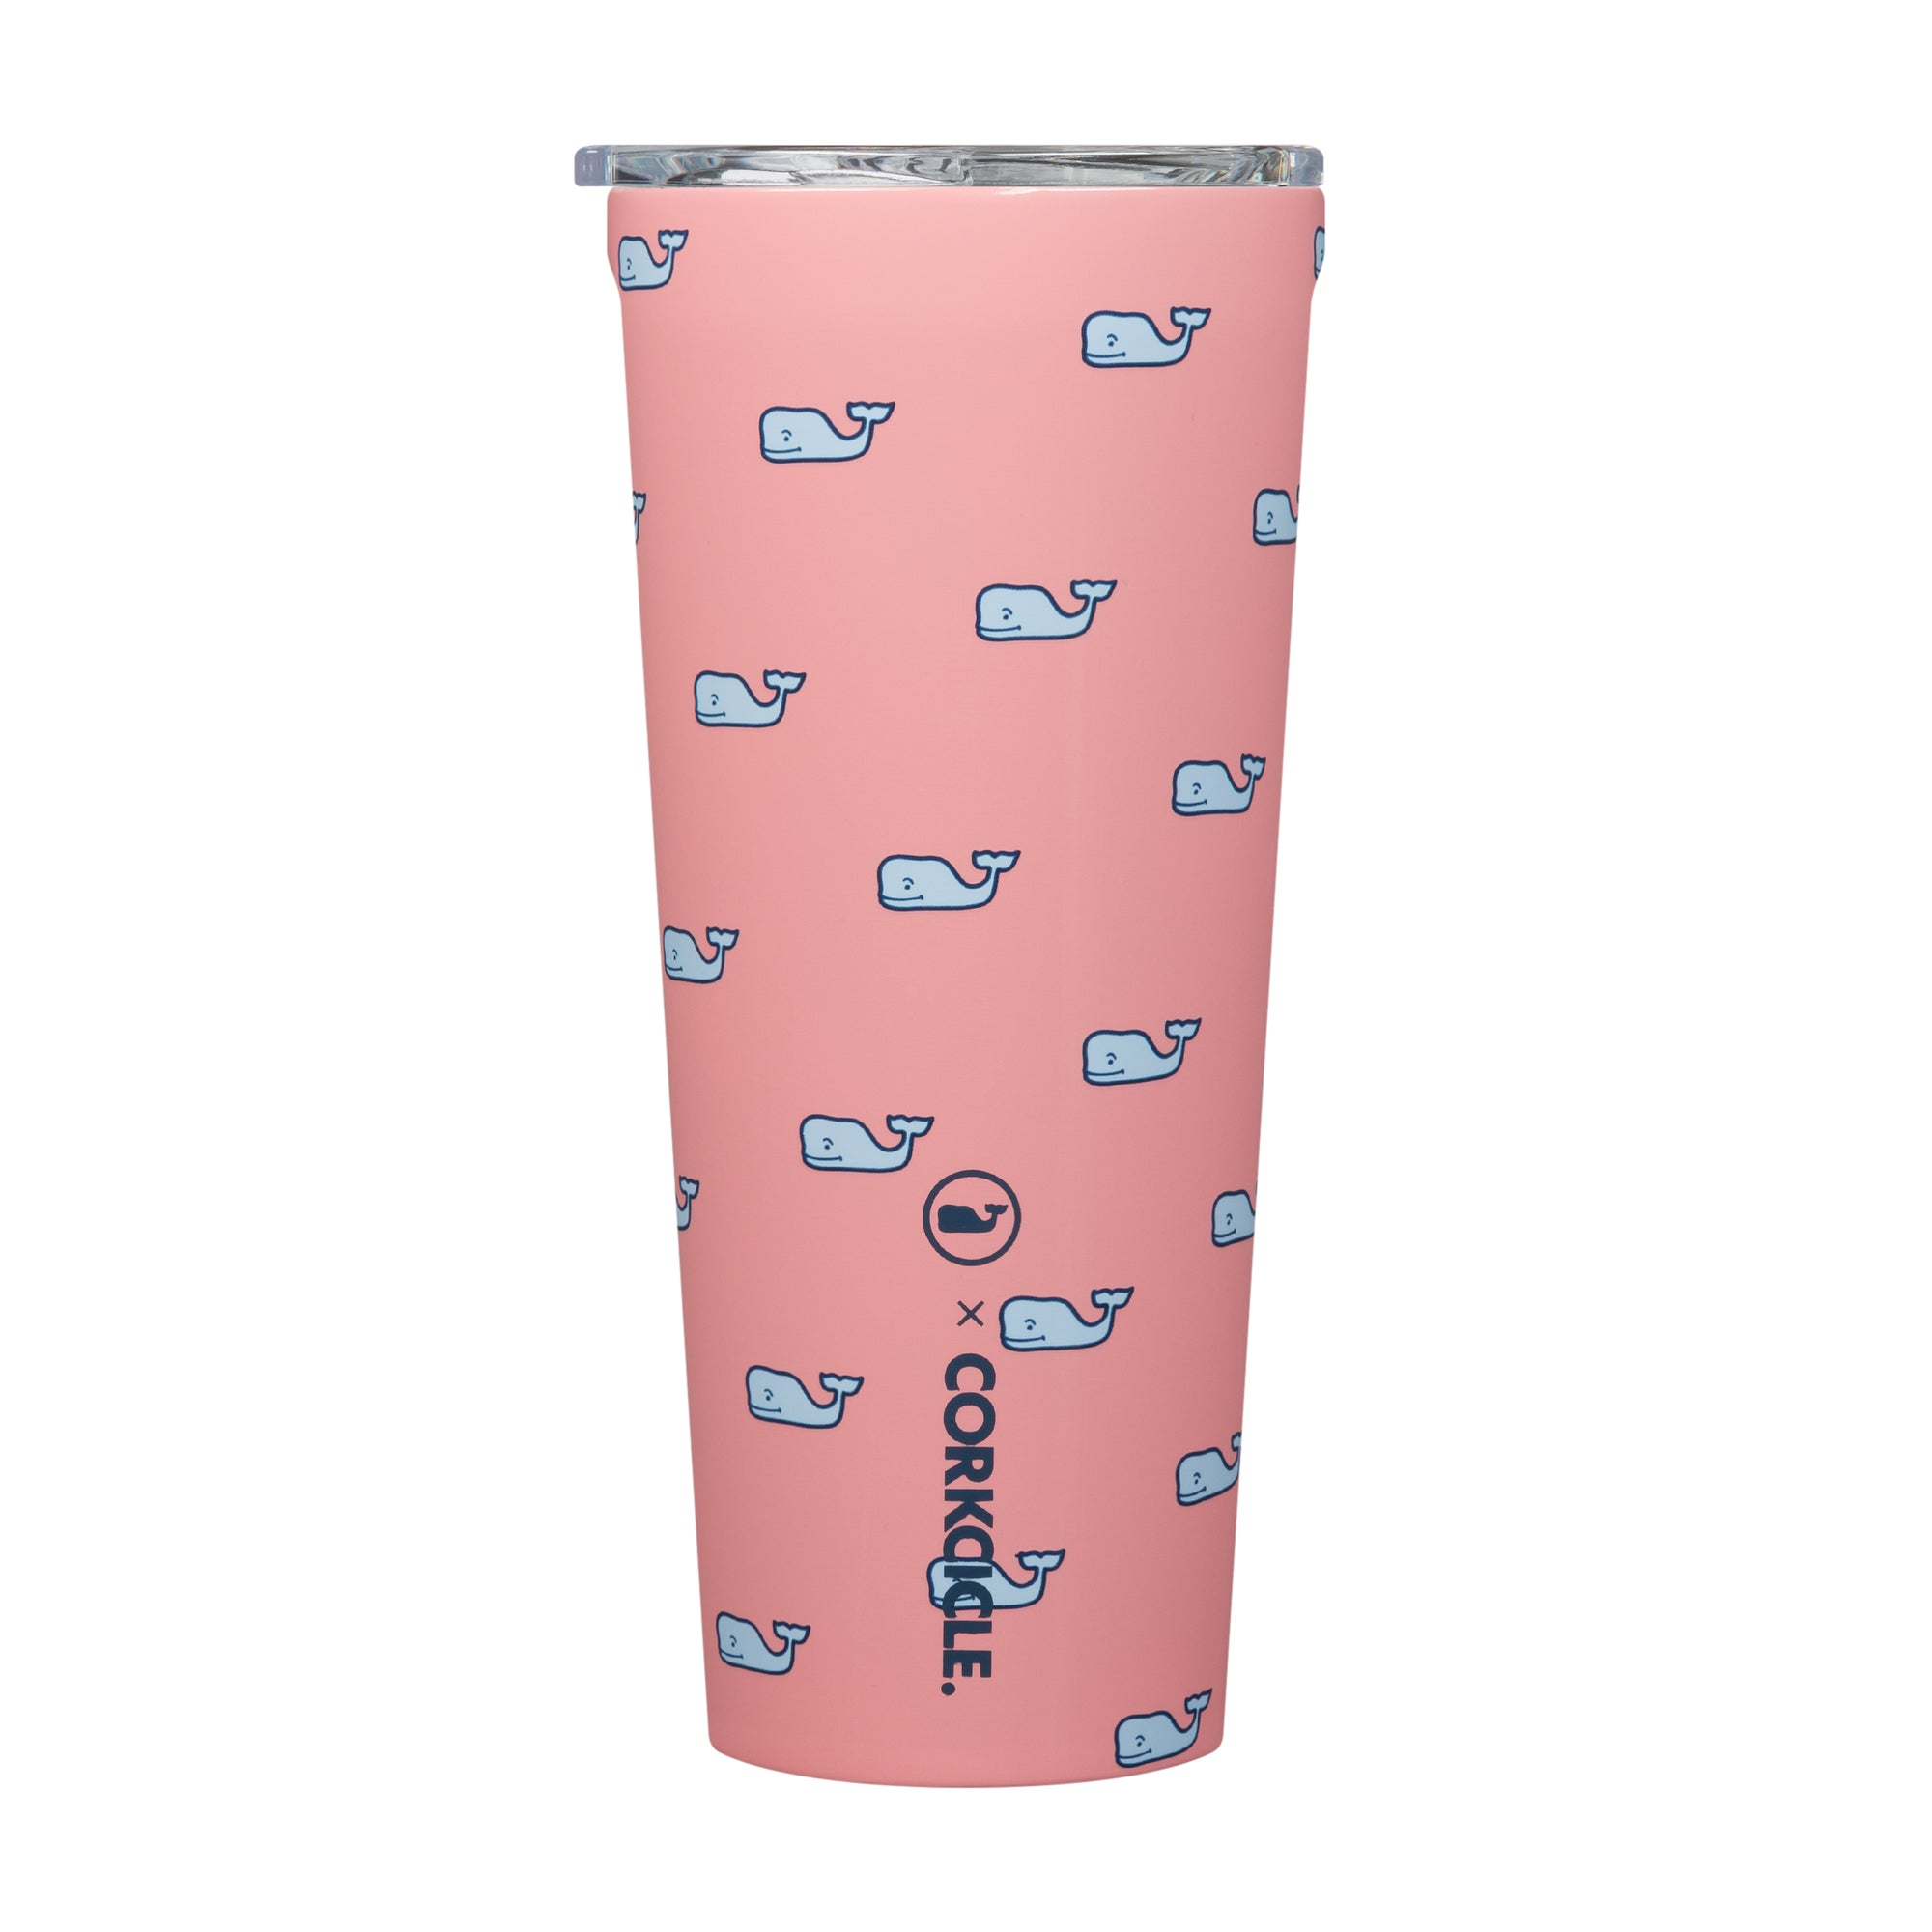 Limited Edition Corkcicle x Vineyard Vines Whale Repeat Tumbler! Yes please. The best part it keeps whatever you fancy cold for 9 hours or hot for 3 hours.    24 oz Triple insulated Shatter proof crystal clear lid Limited Edition